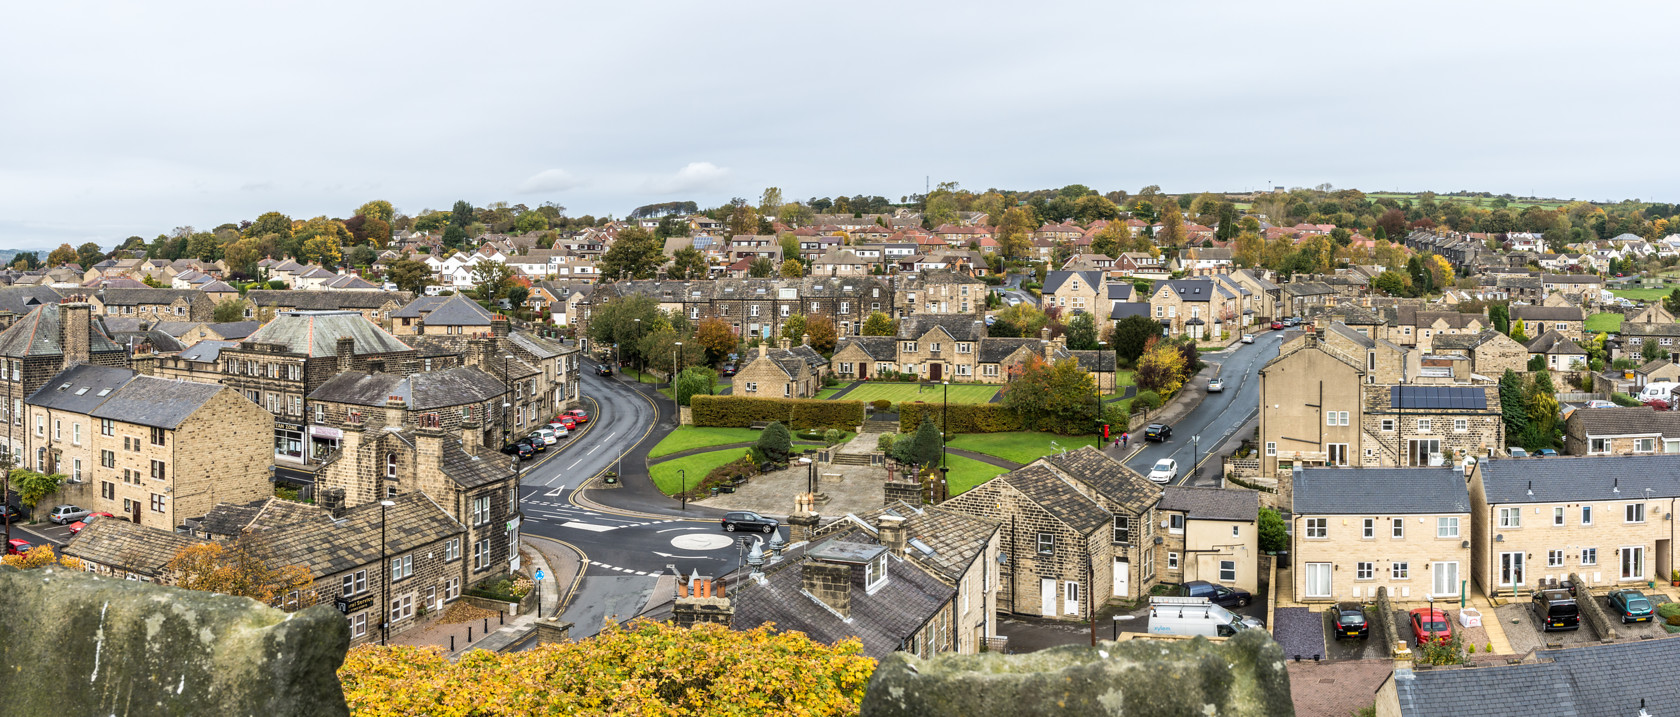 looking north from st oswalds bell tower (ref pa 30) 